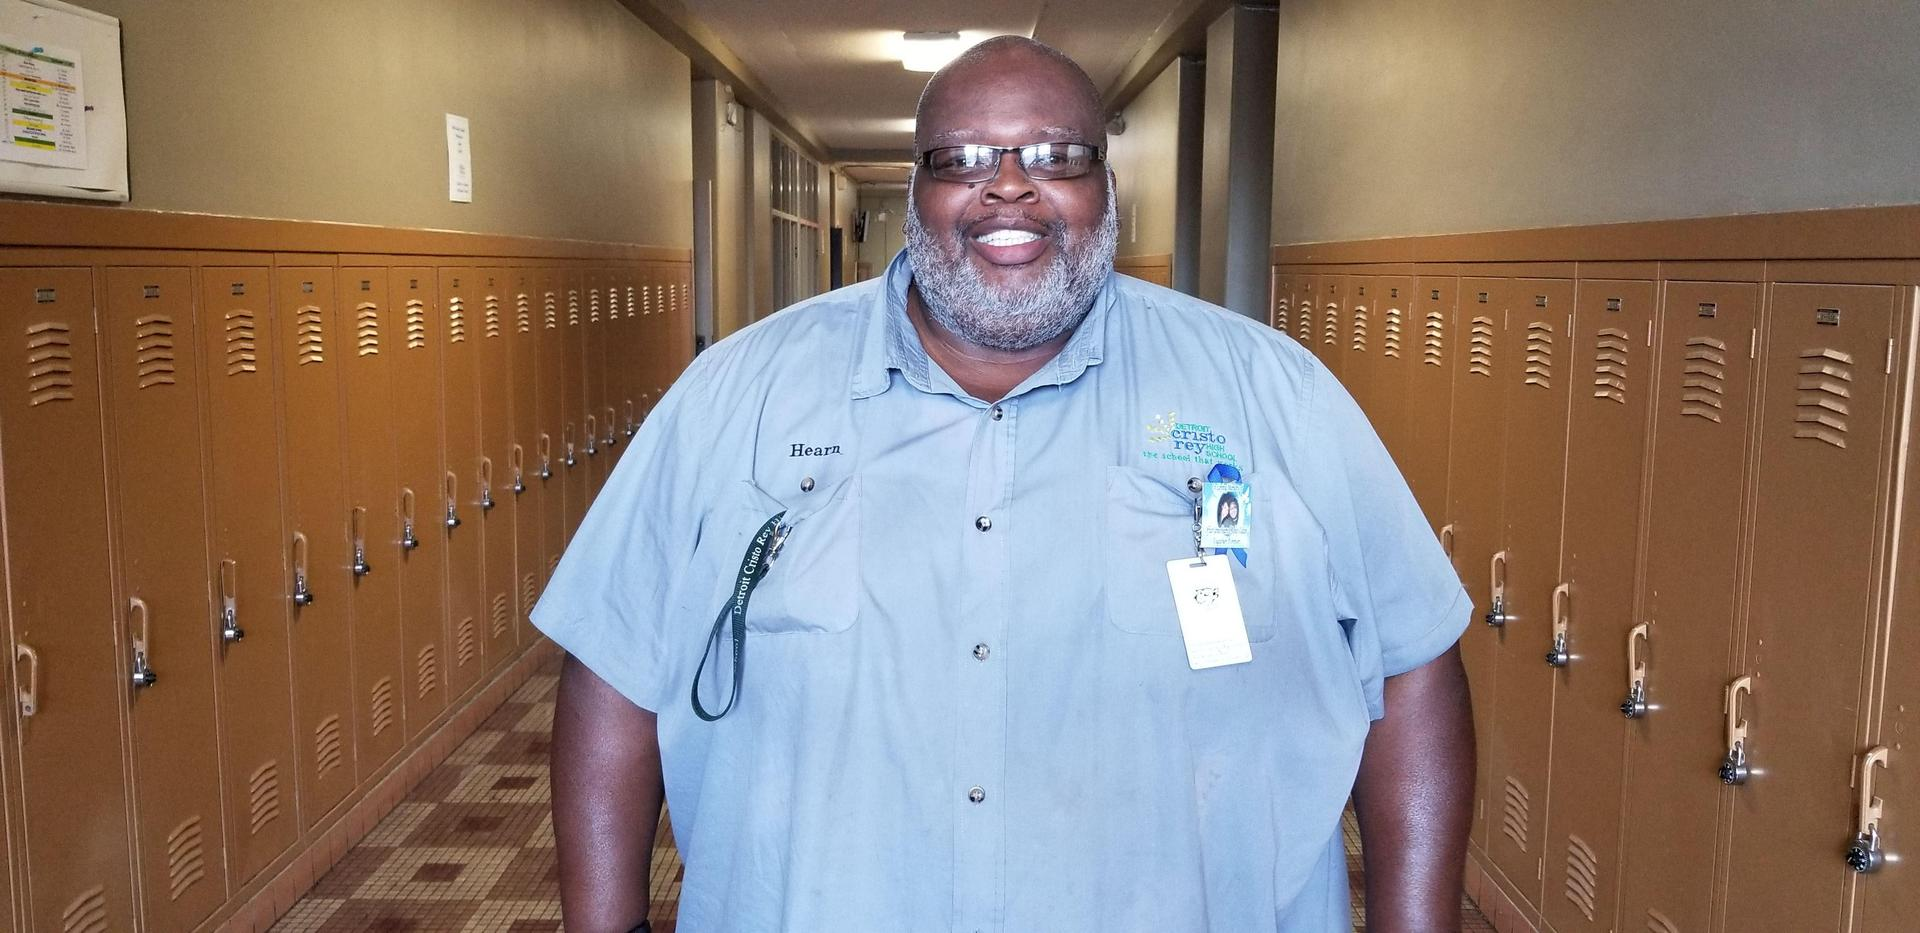 Andre Hearn, Janitorial Custodian